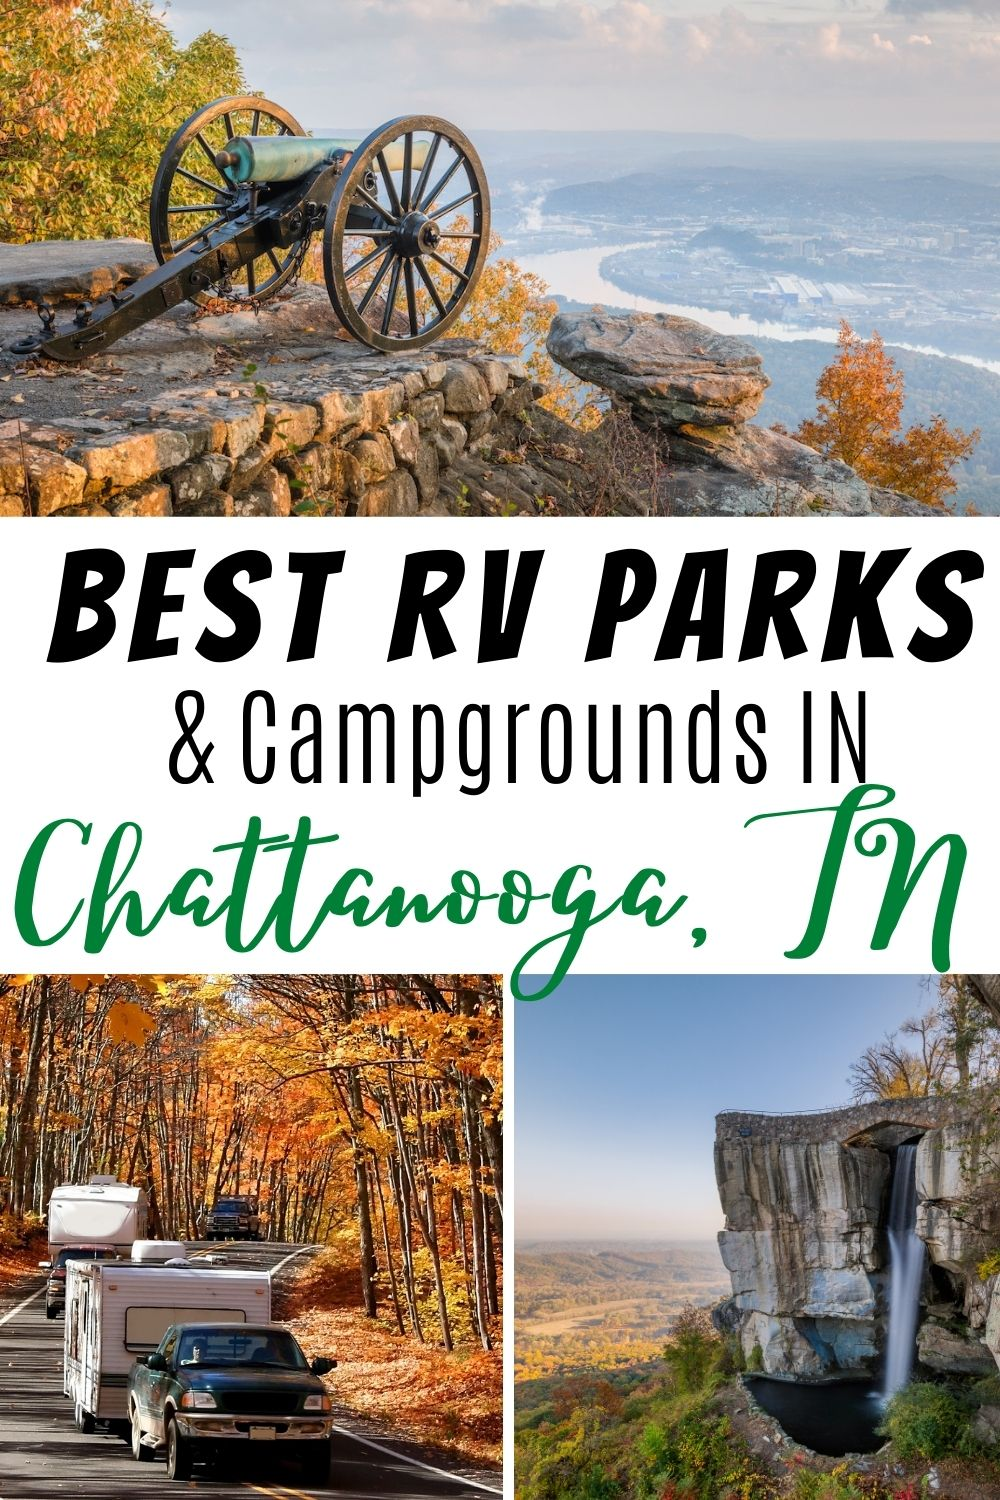 rv parks near Chattanooga